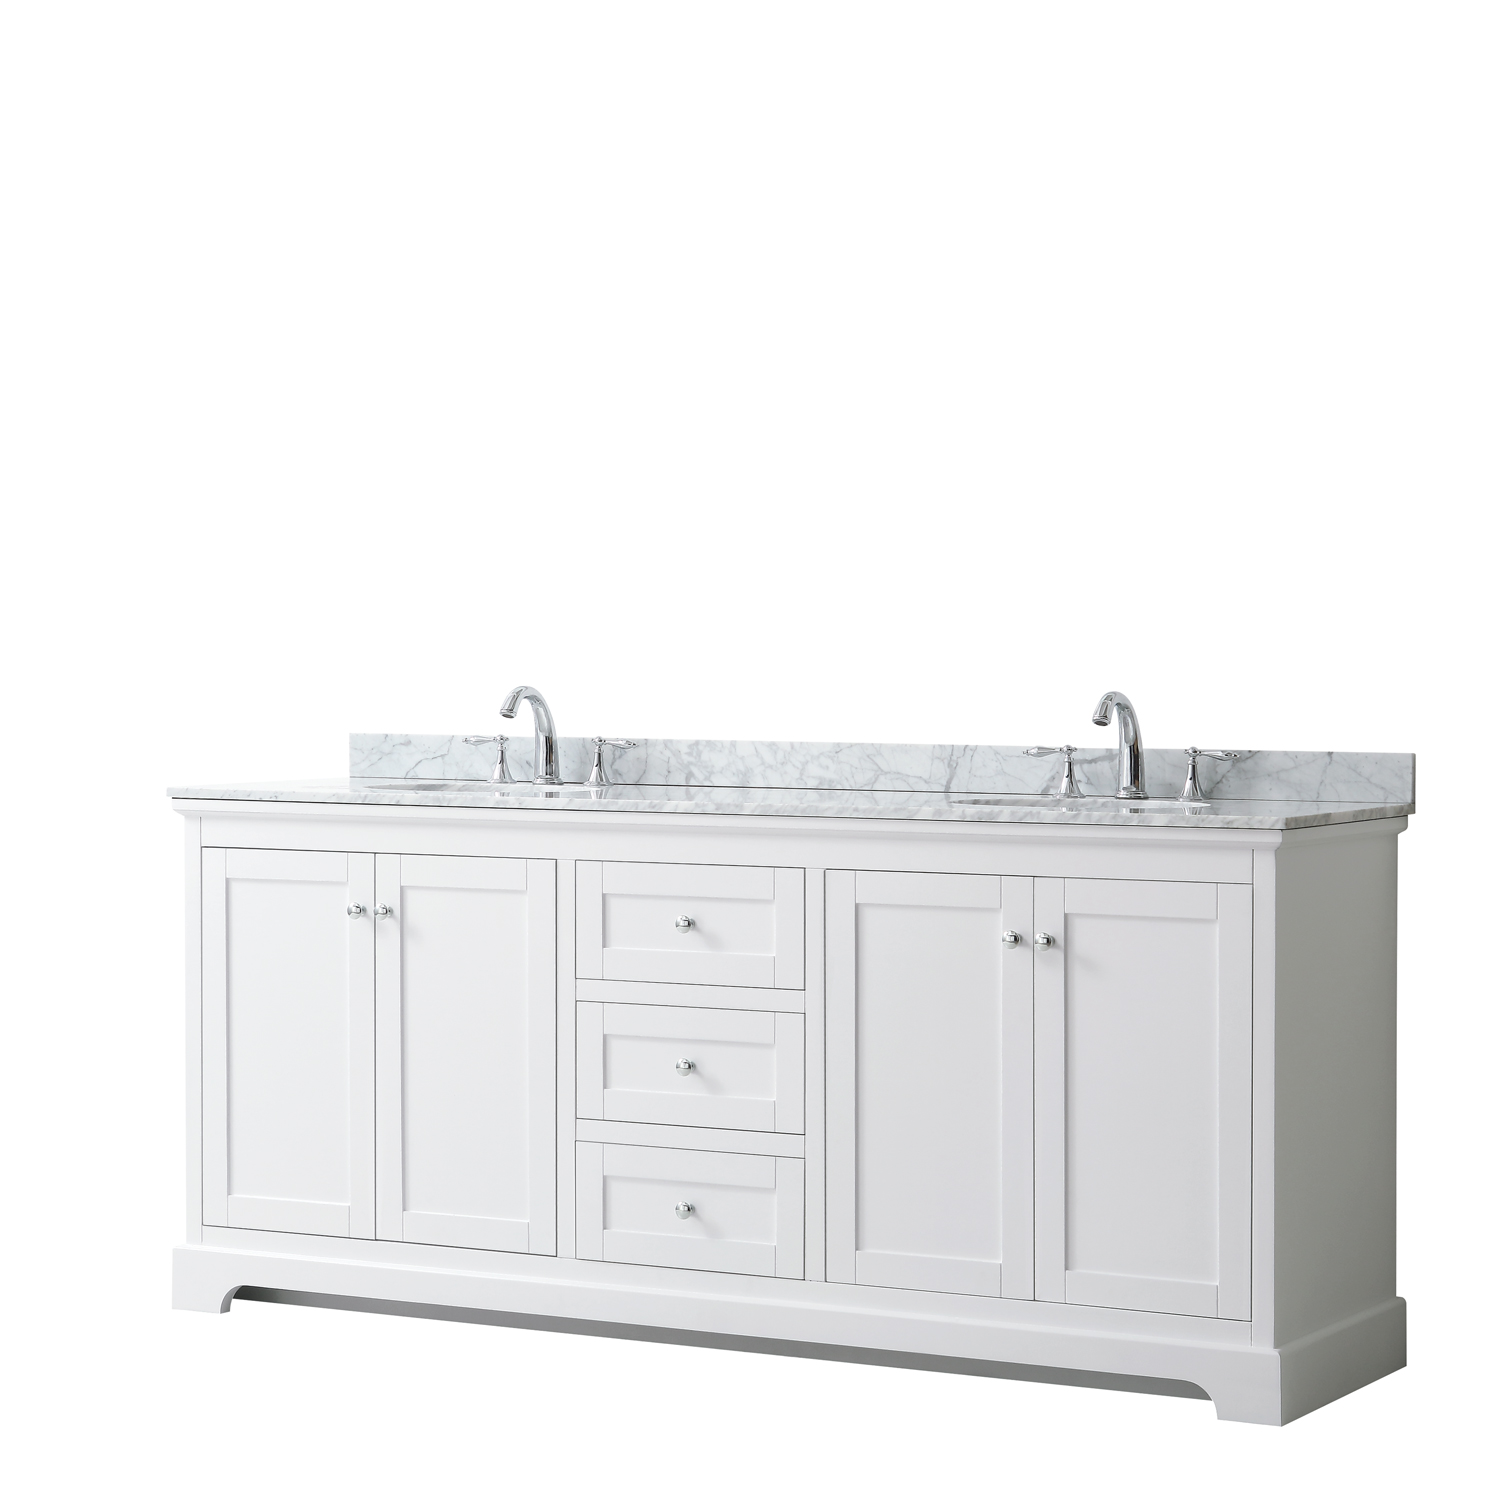 "80"" Double Bathroom Vanity in White, No Countertop, No Sinks, and No Mirror"